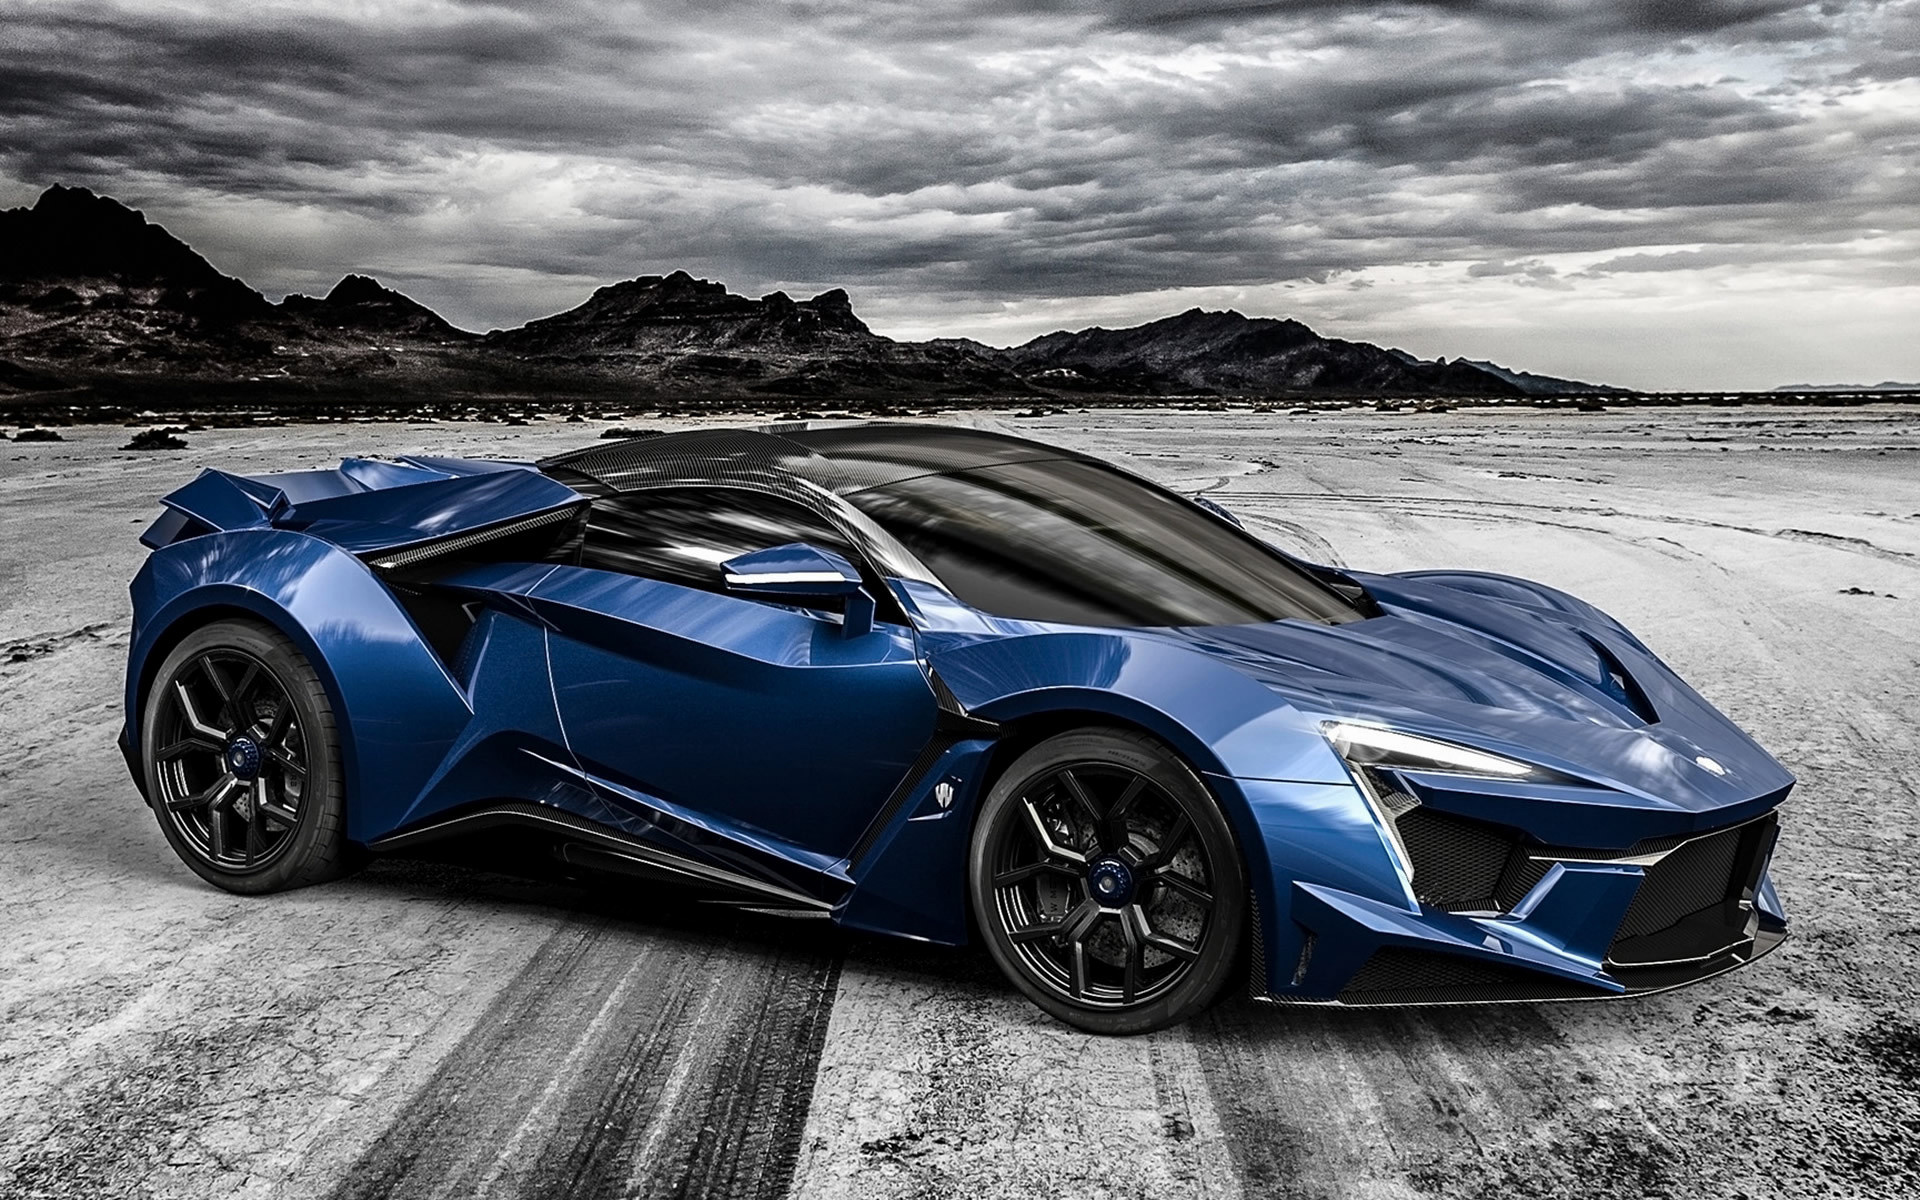 68 Blue Car Wallpapers on WallpaperPlay 1920x1200